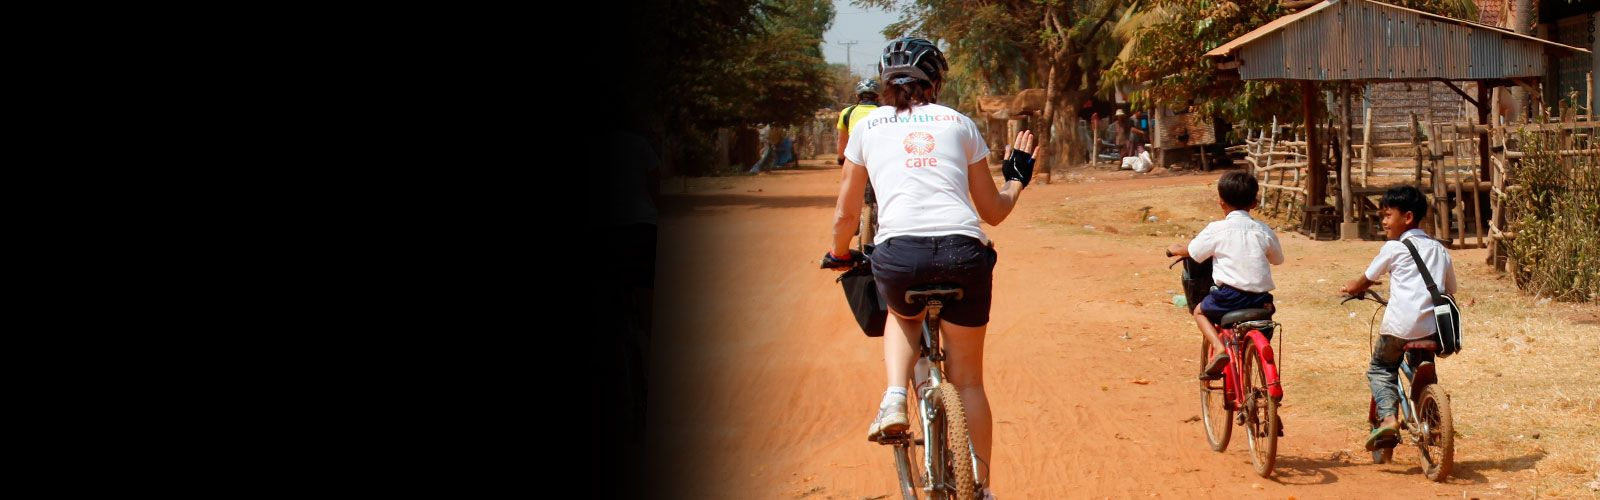 CARE supporter cycling in Cambodia and waving at young Cambodian children